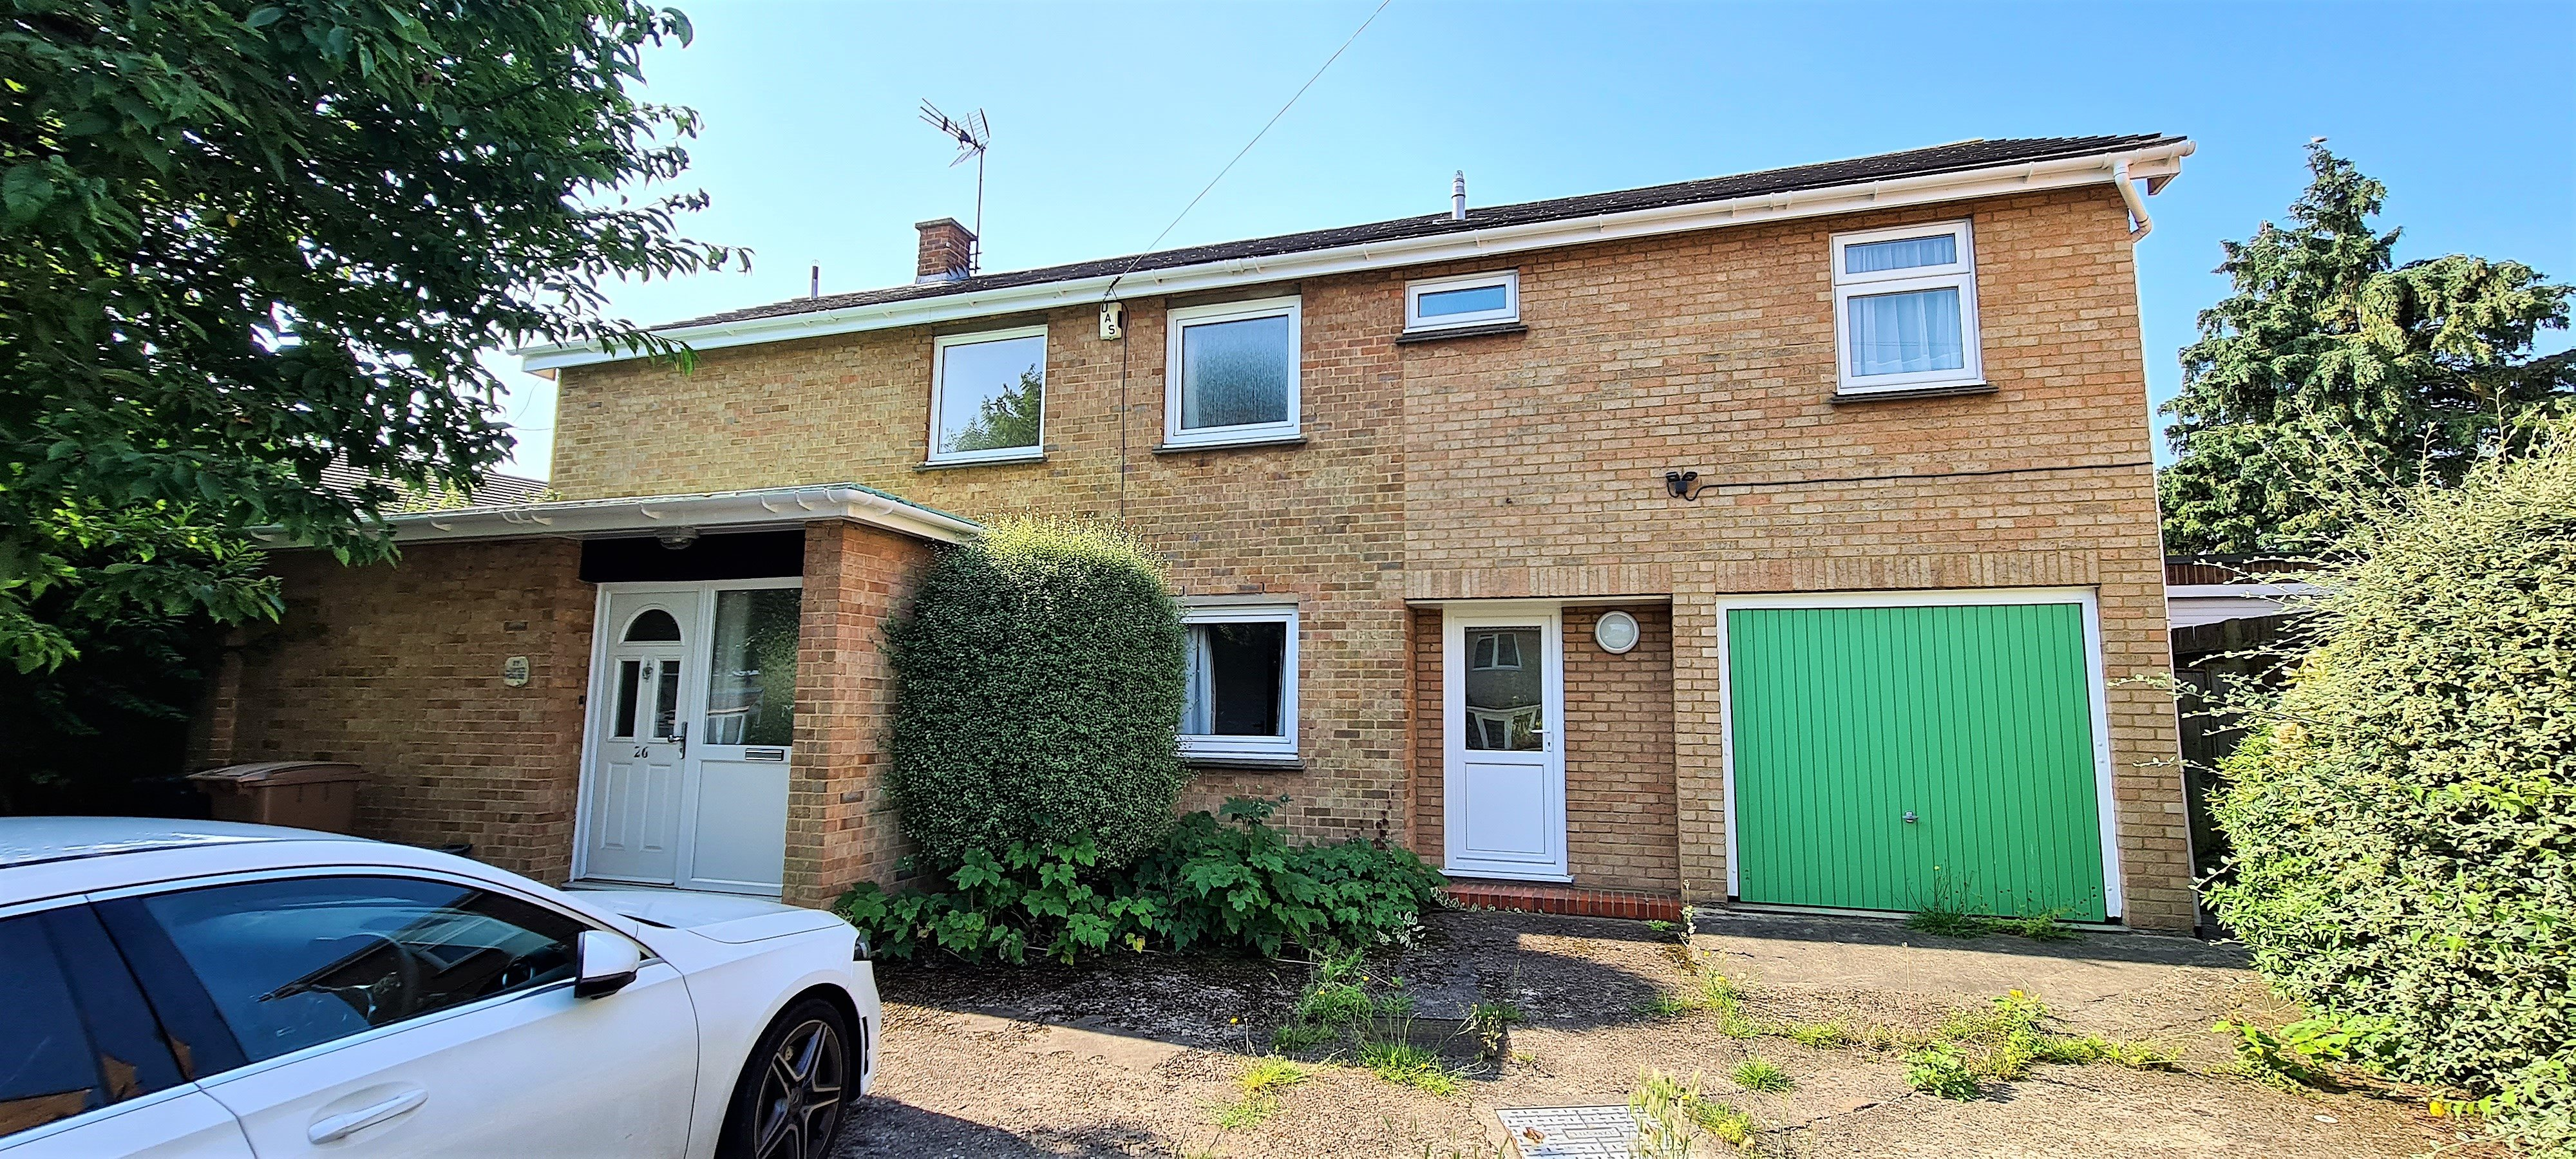 5 bed detached house to rent in Lewis Drive, Chelmsford - Property Image 1